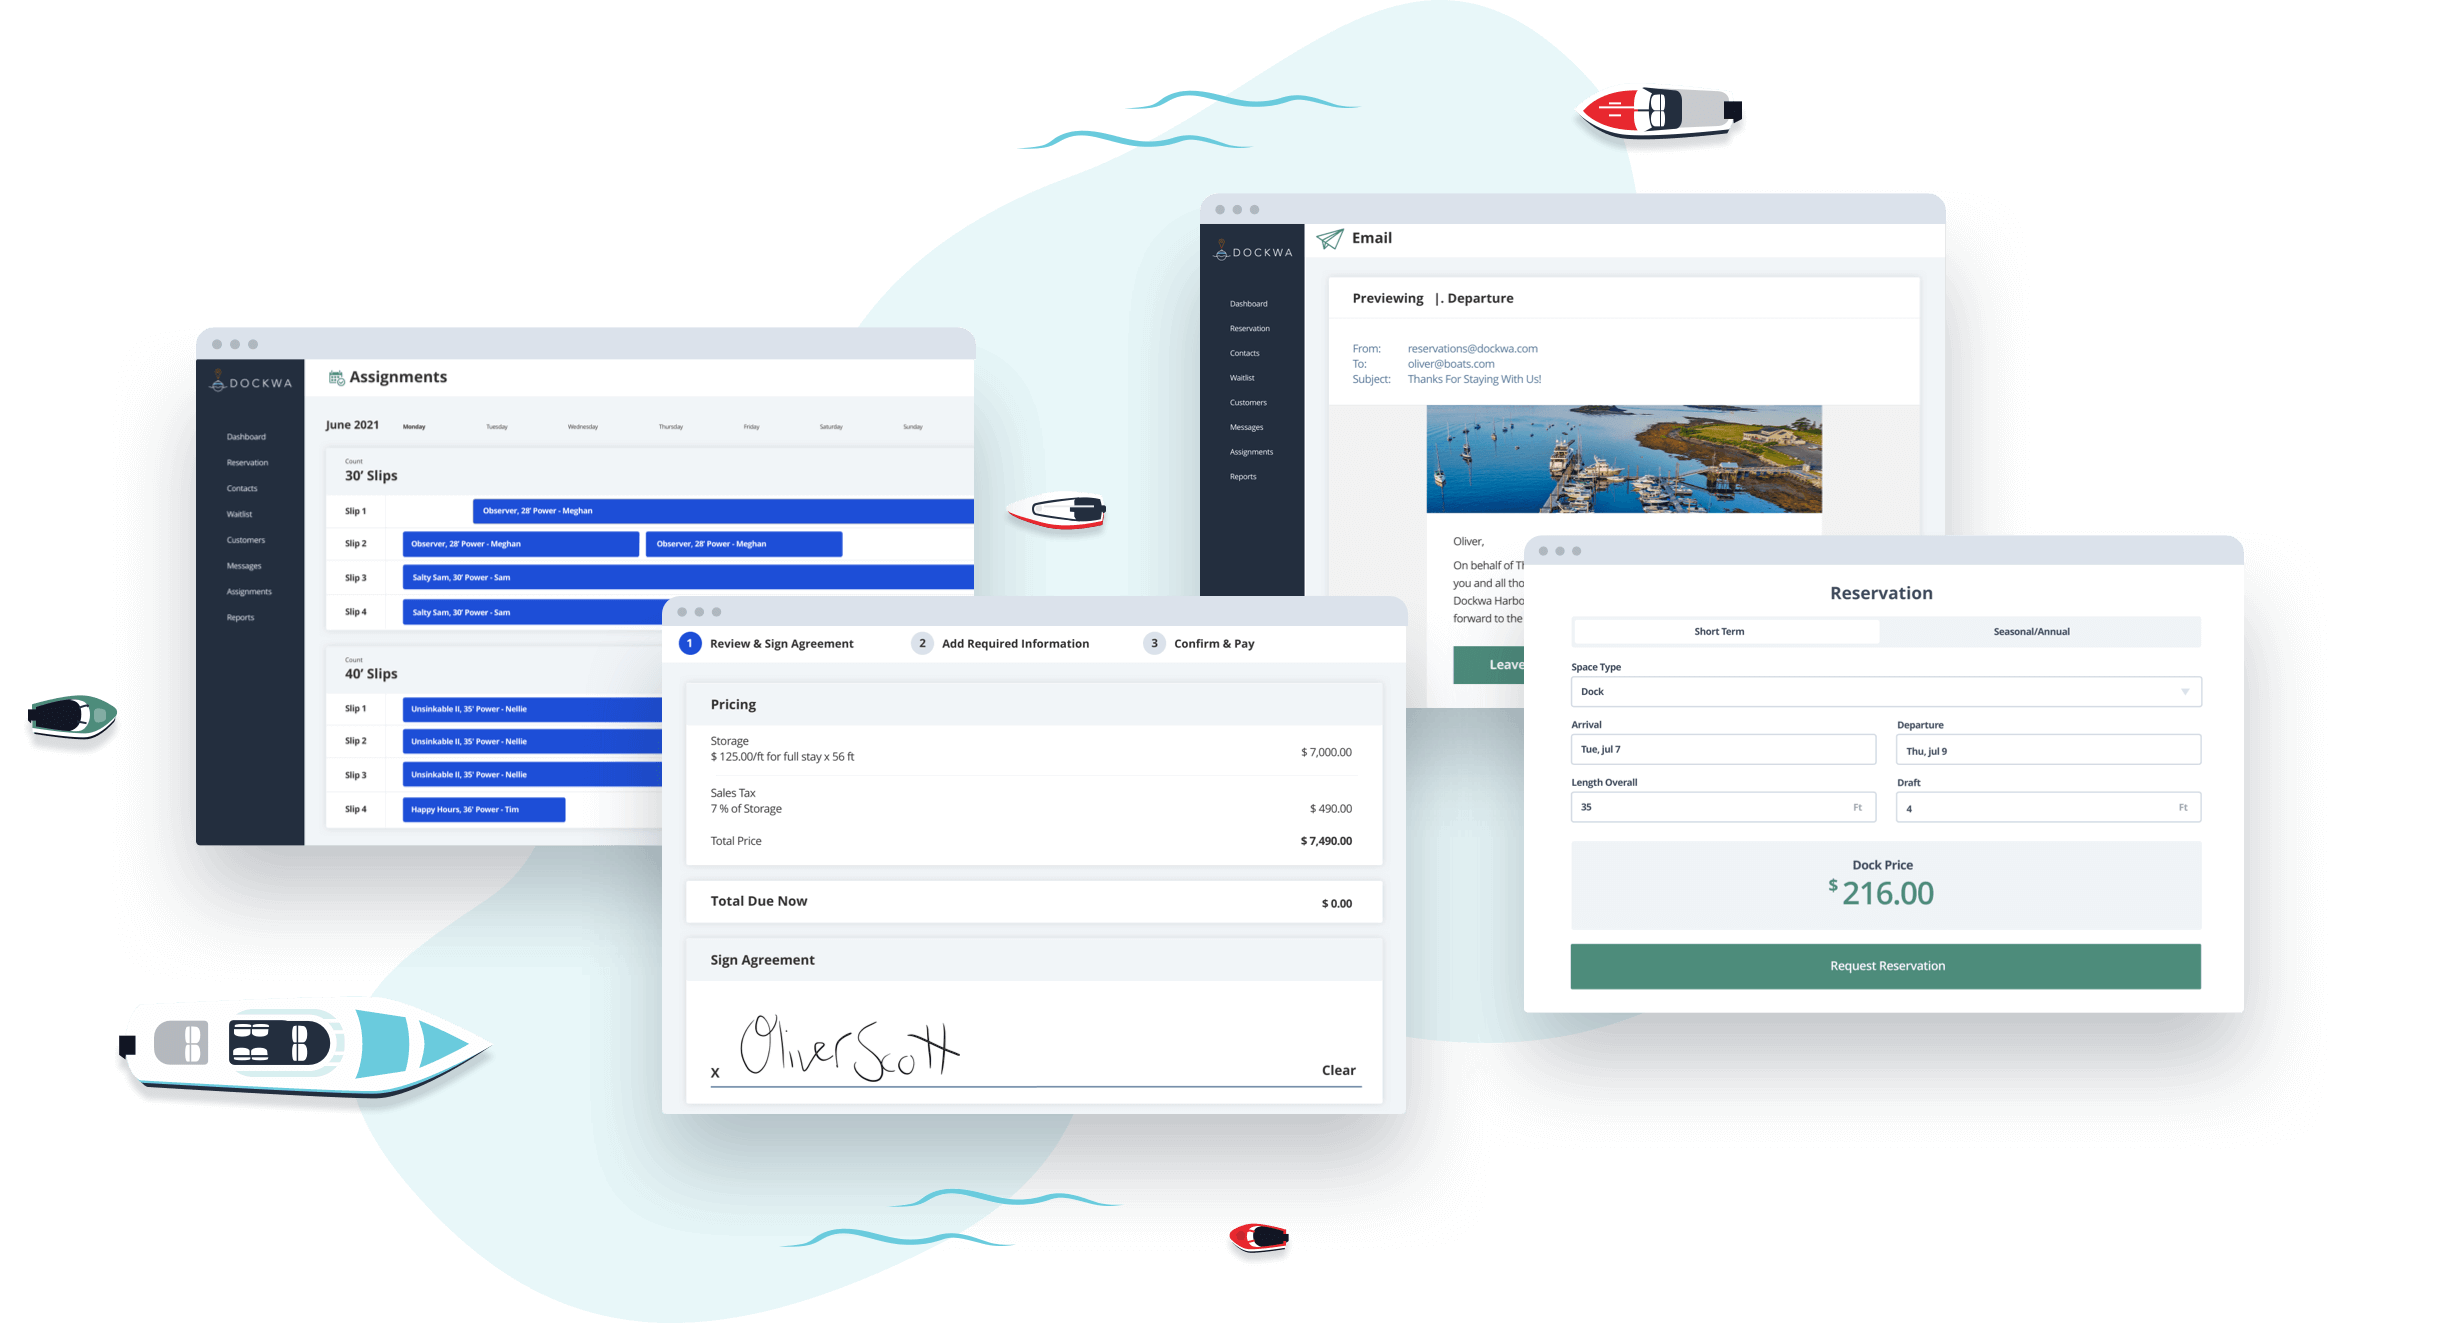 Dockwa's marina management software features